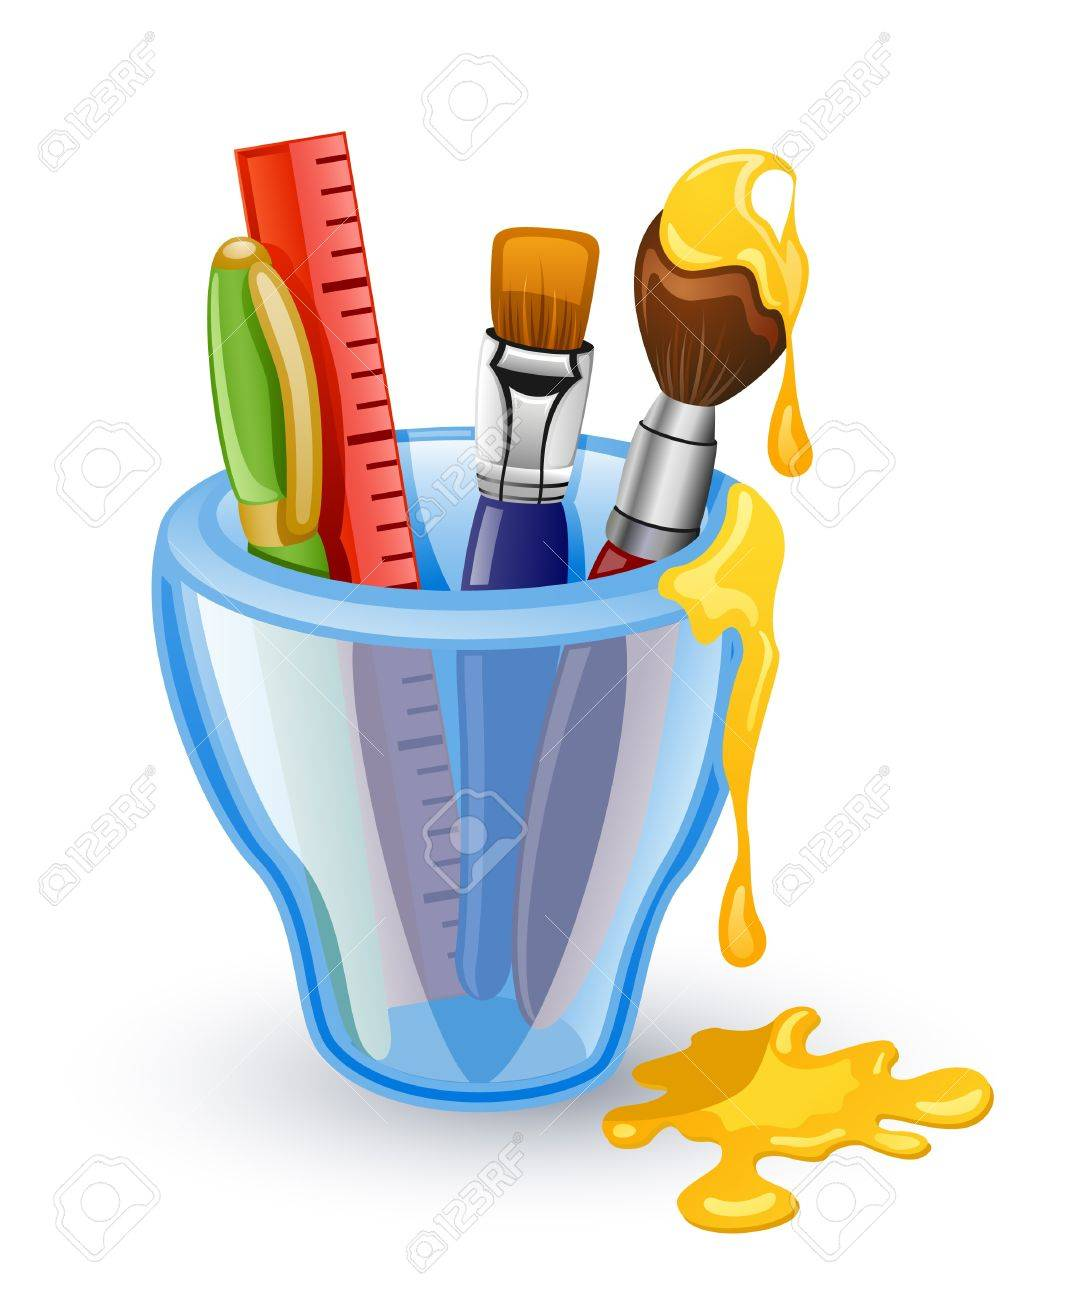 School tools: pen, brush, ruler in the glass. Isolated on white background. Stock Vector - 10644521